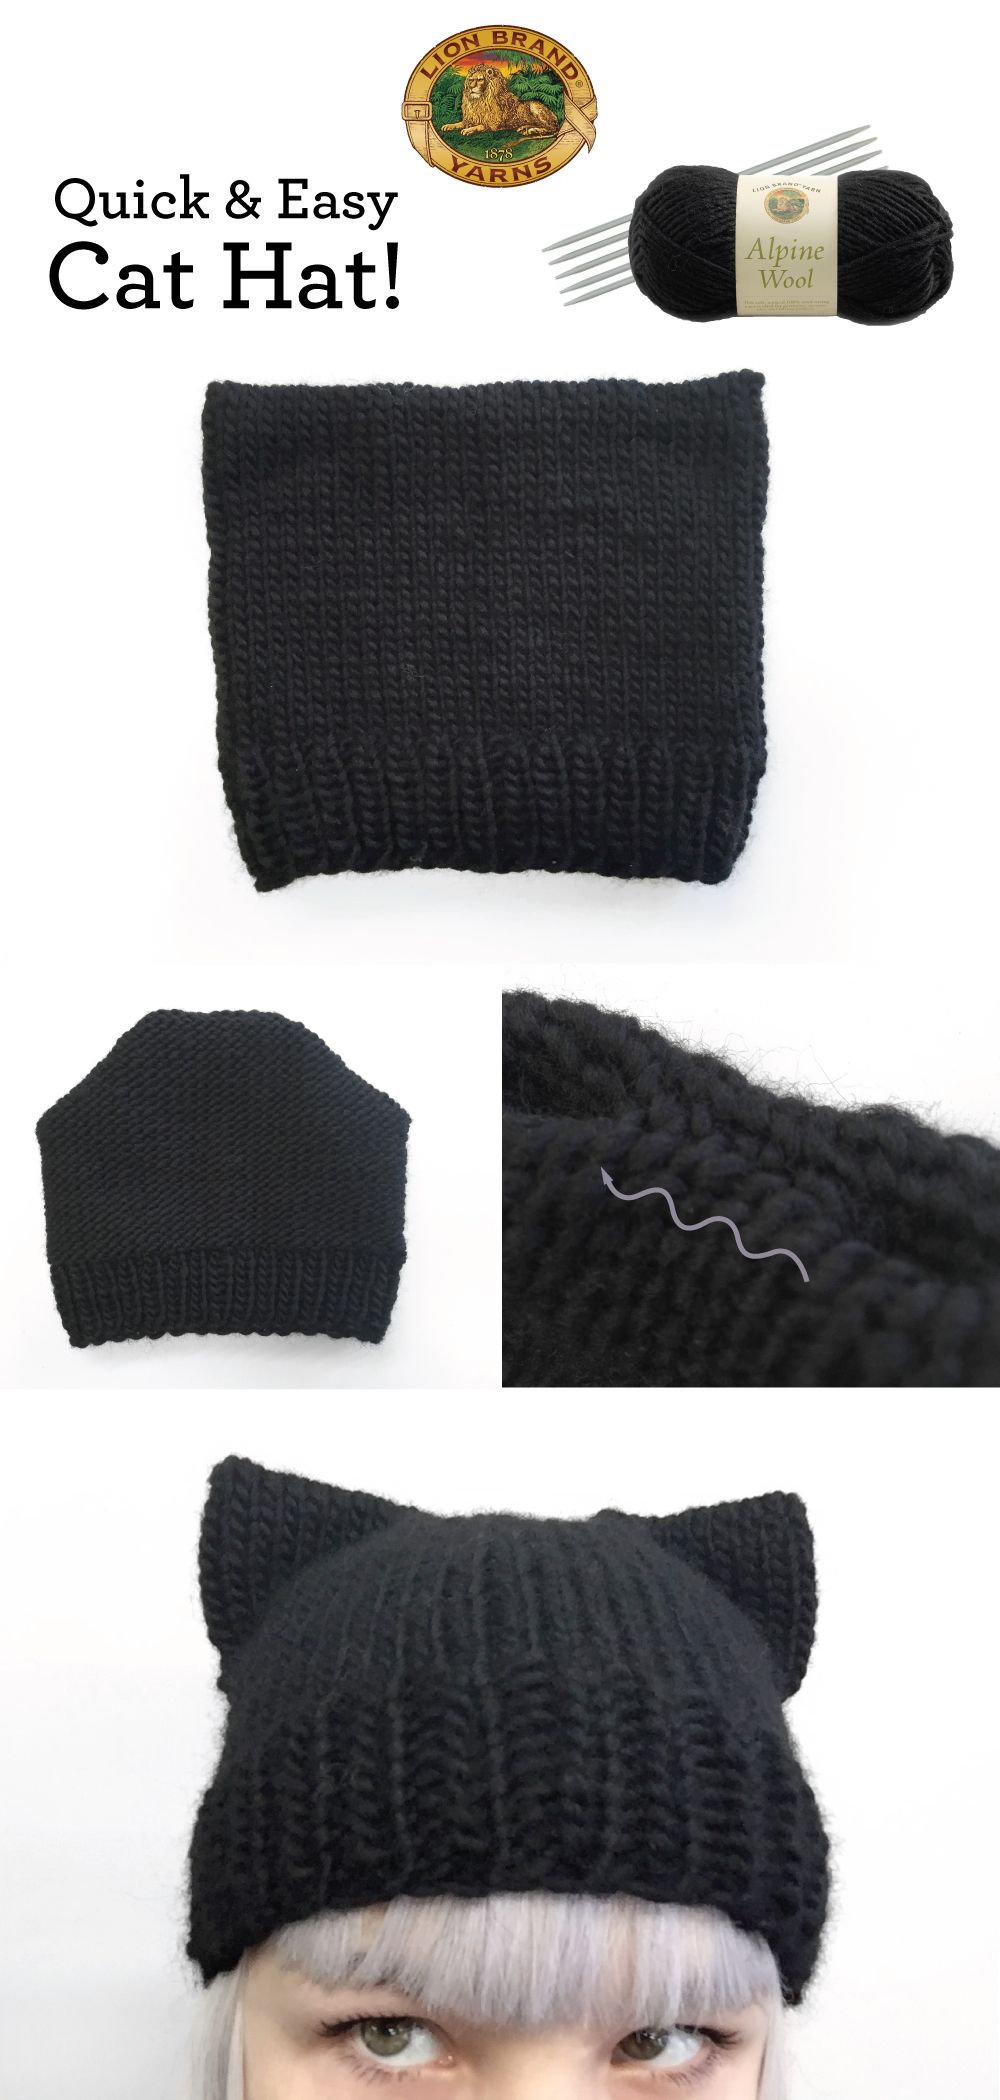 Knit a Quick & Easy Cat Hat! | Lion Brand Notebook